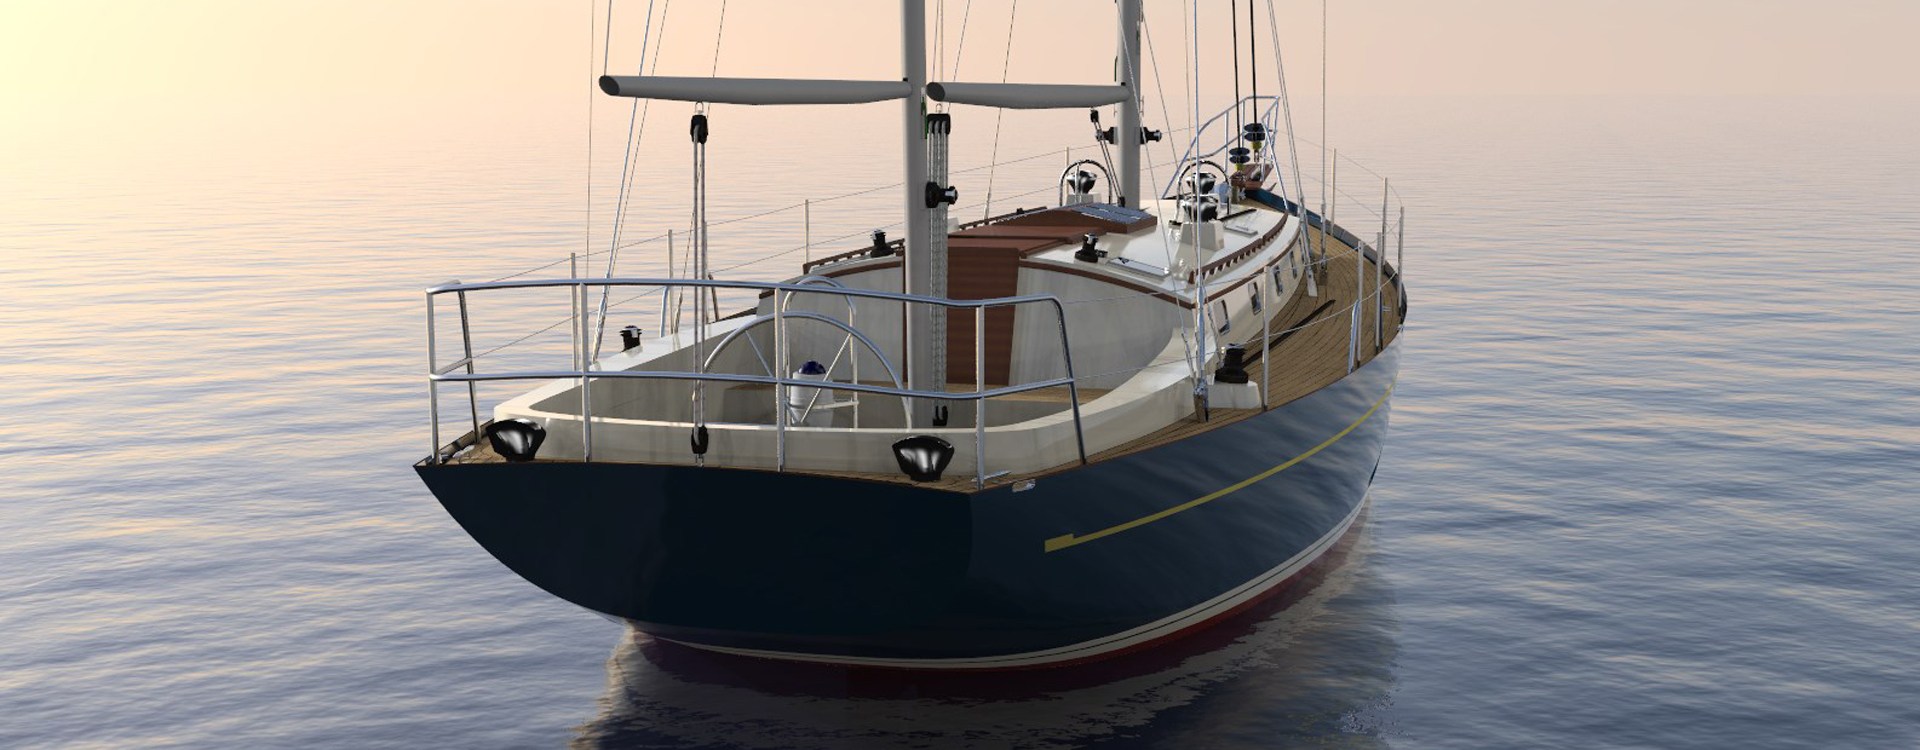 Selena 44, modern classic ketch, traditional refinement aft view